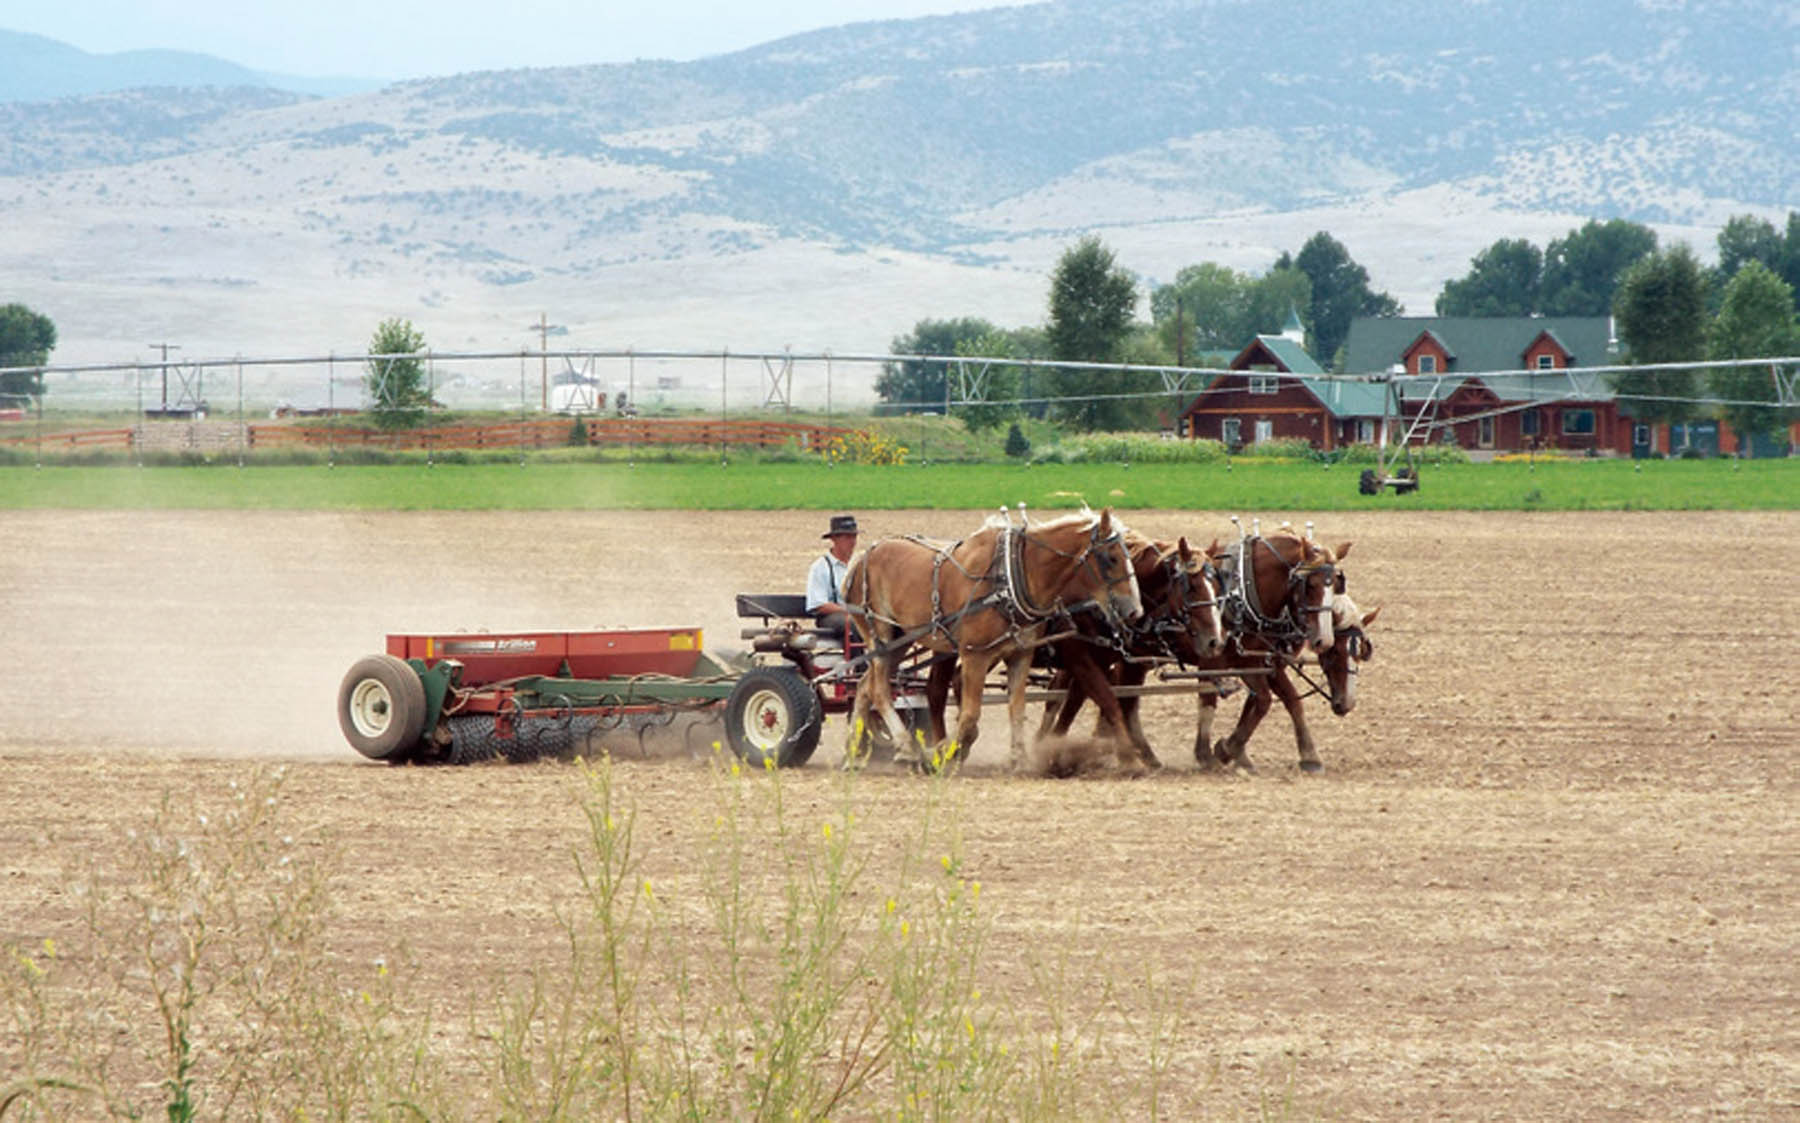 Farming In The San Luis Valley, Then And Now